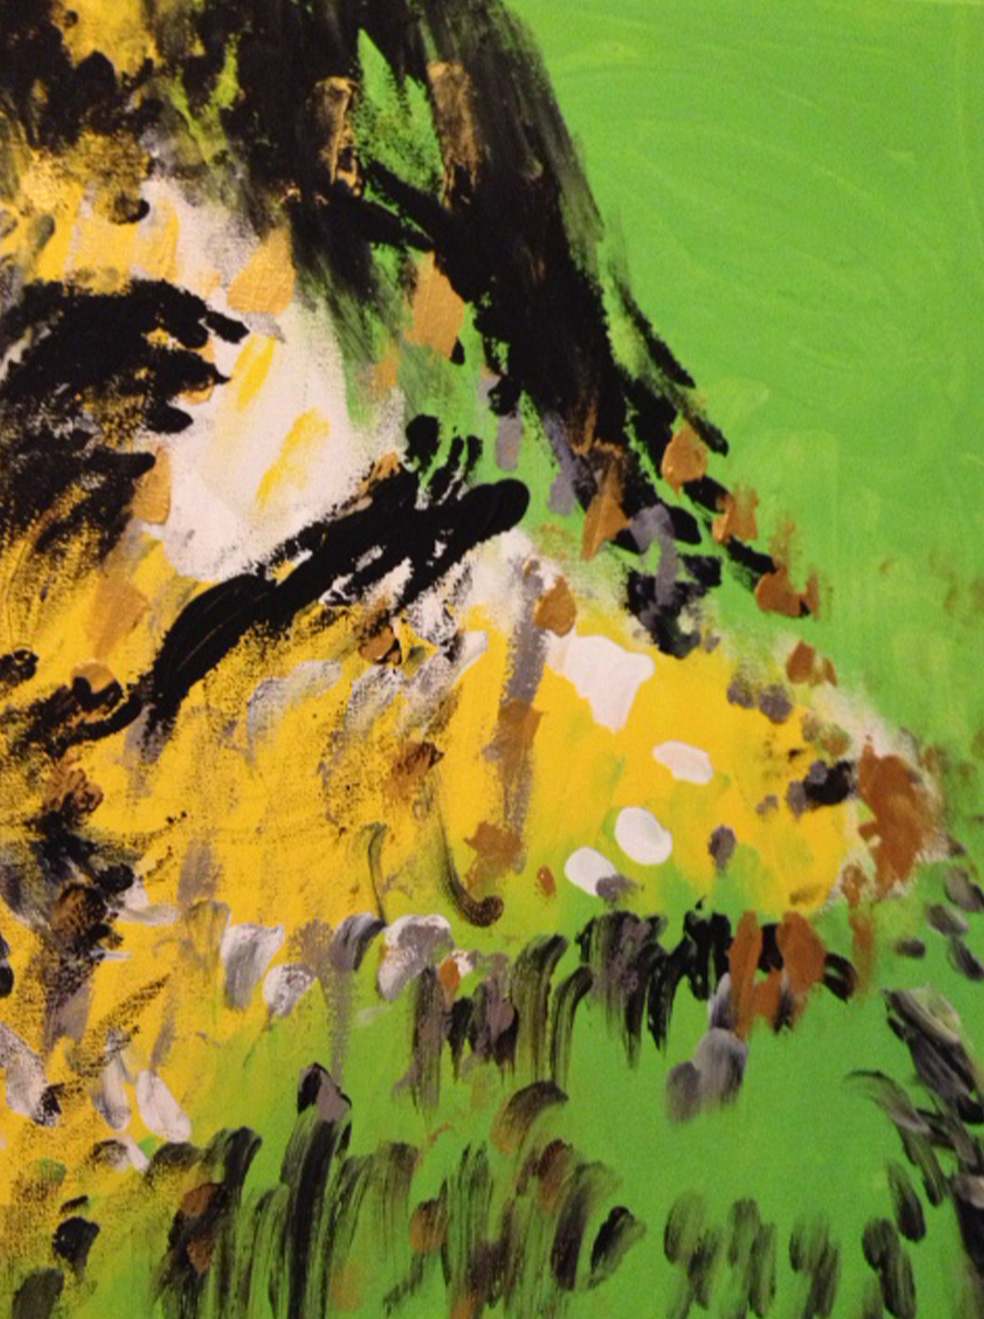 Change is a portrait oriented abstract of black, yellow and gold on a green background. Some people see the left side of someone's face looking back at them.